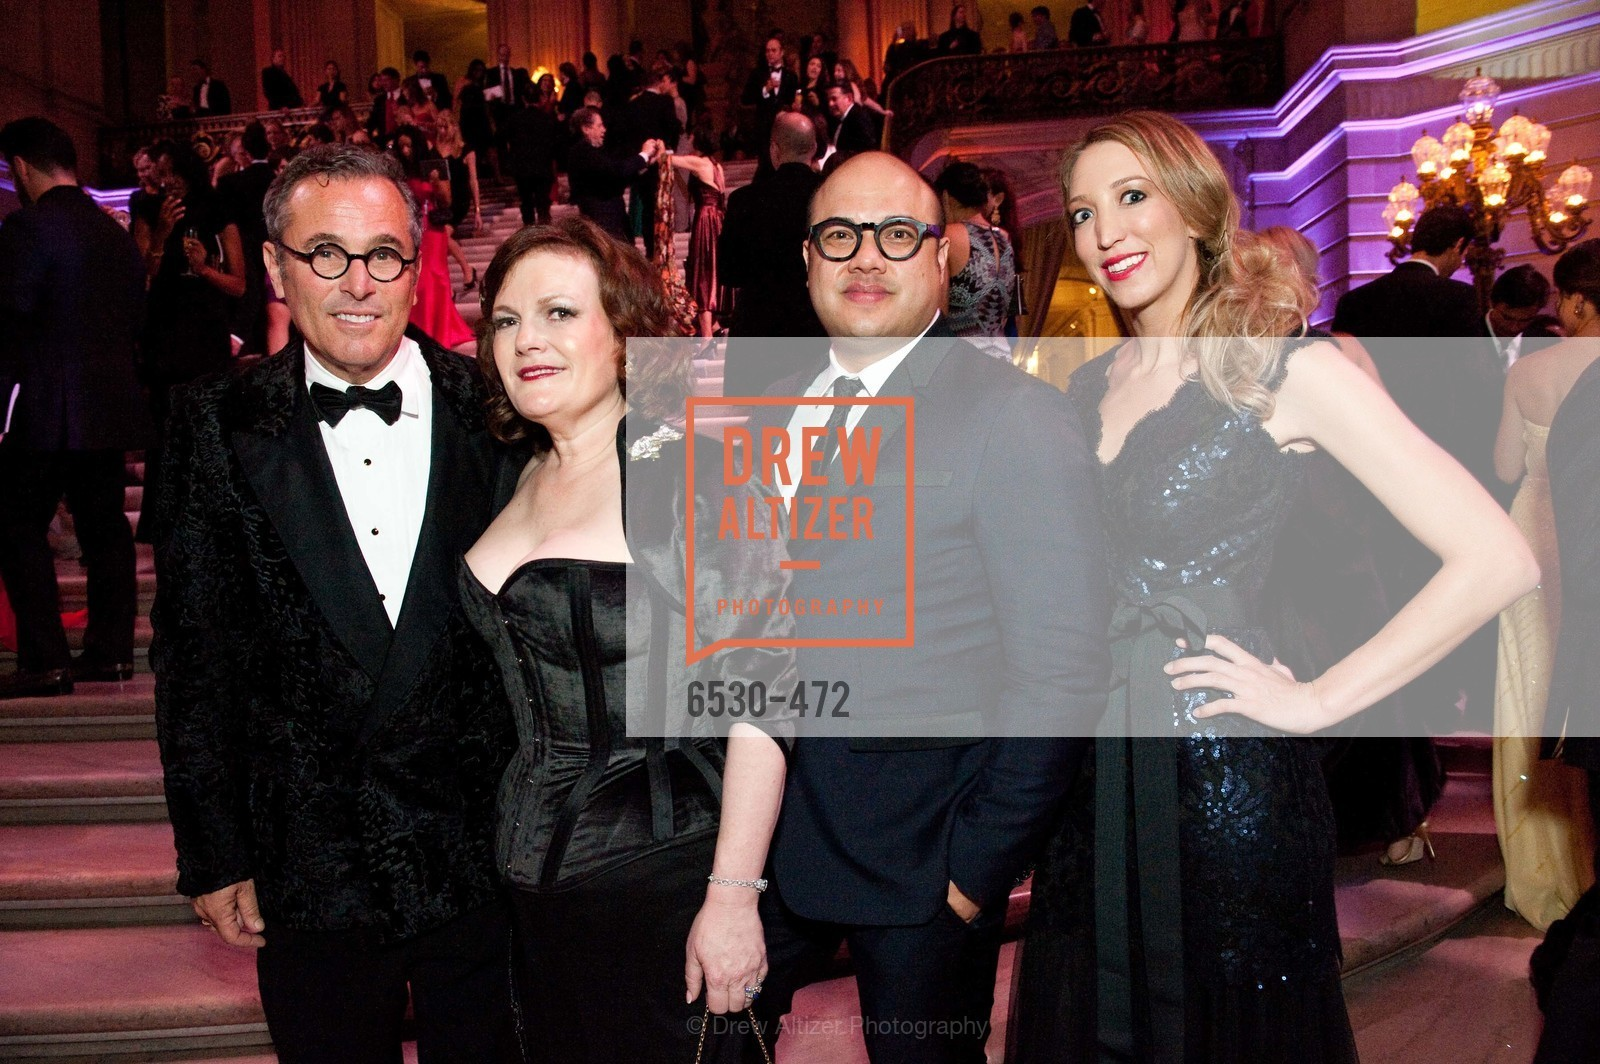 Ricky Serbin, Jennifer Raiser, Jay Phillips, Kelly Larkin, SAN FRANCISCO BALLET Opening Night Gala: PHENOMENAL - Intermission & Dinner, US. SF City Hall, January 22nd, 2014,Drew Altizer, Drew Altizer Photography, full-service event agency, private events, San Francisco photographer, photographer California